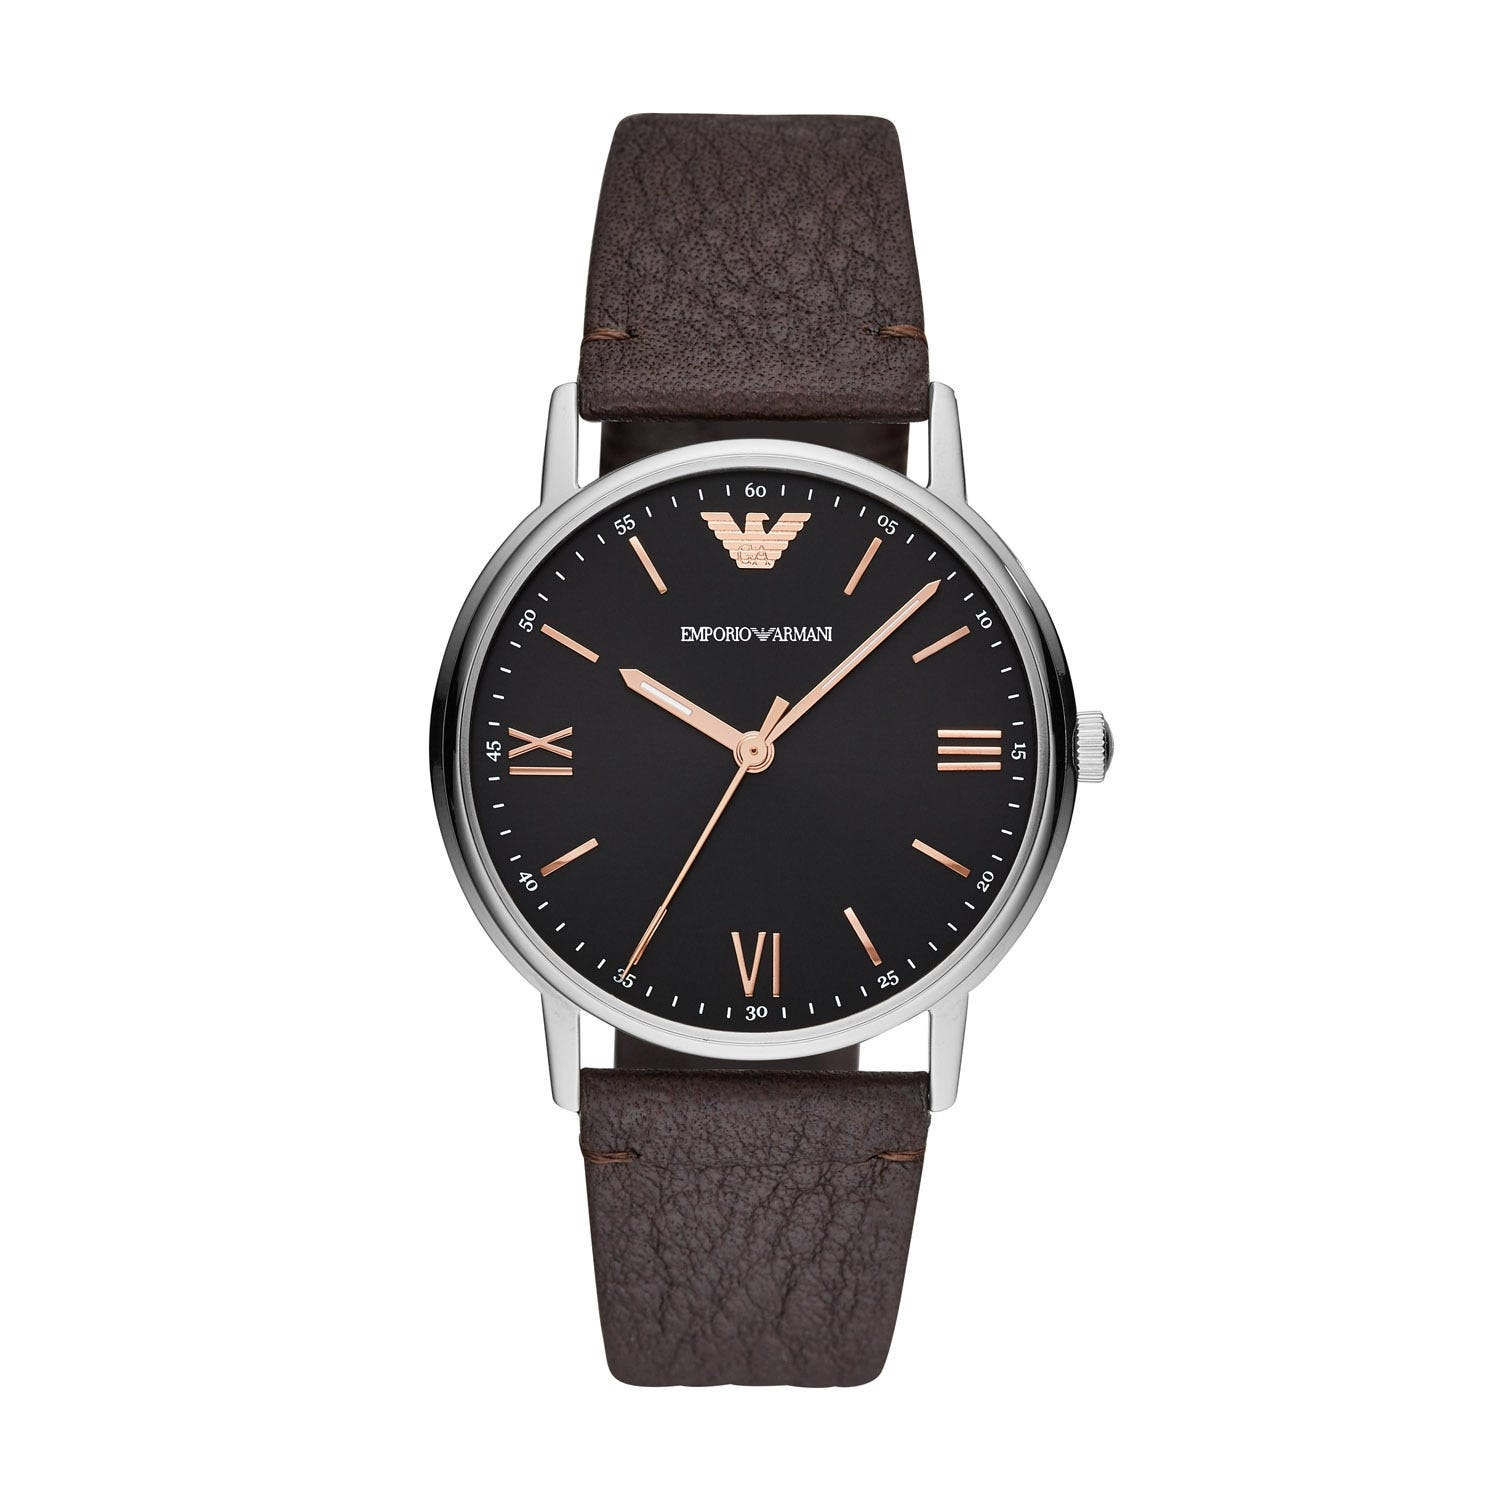 Emporio Armani Brown Leather 41mm Men's Watch